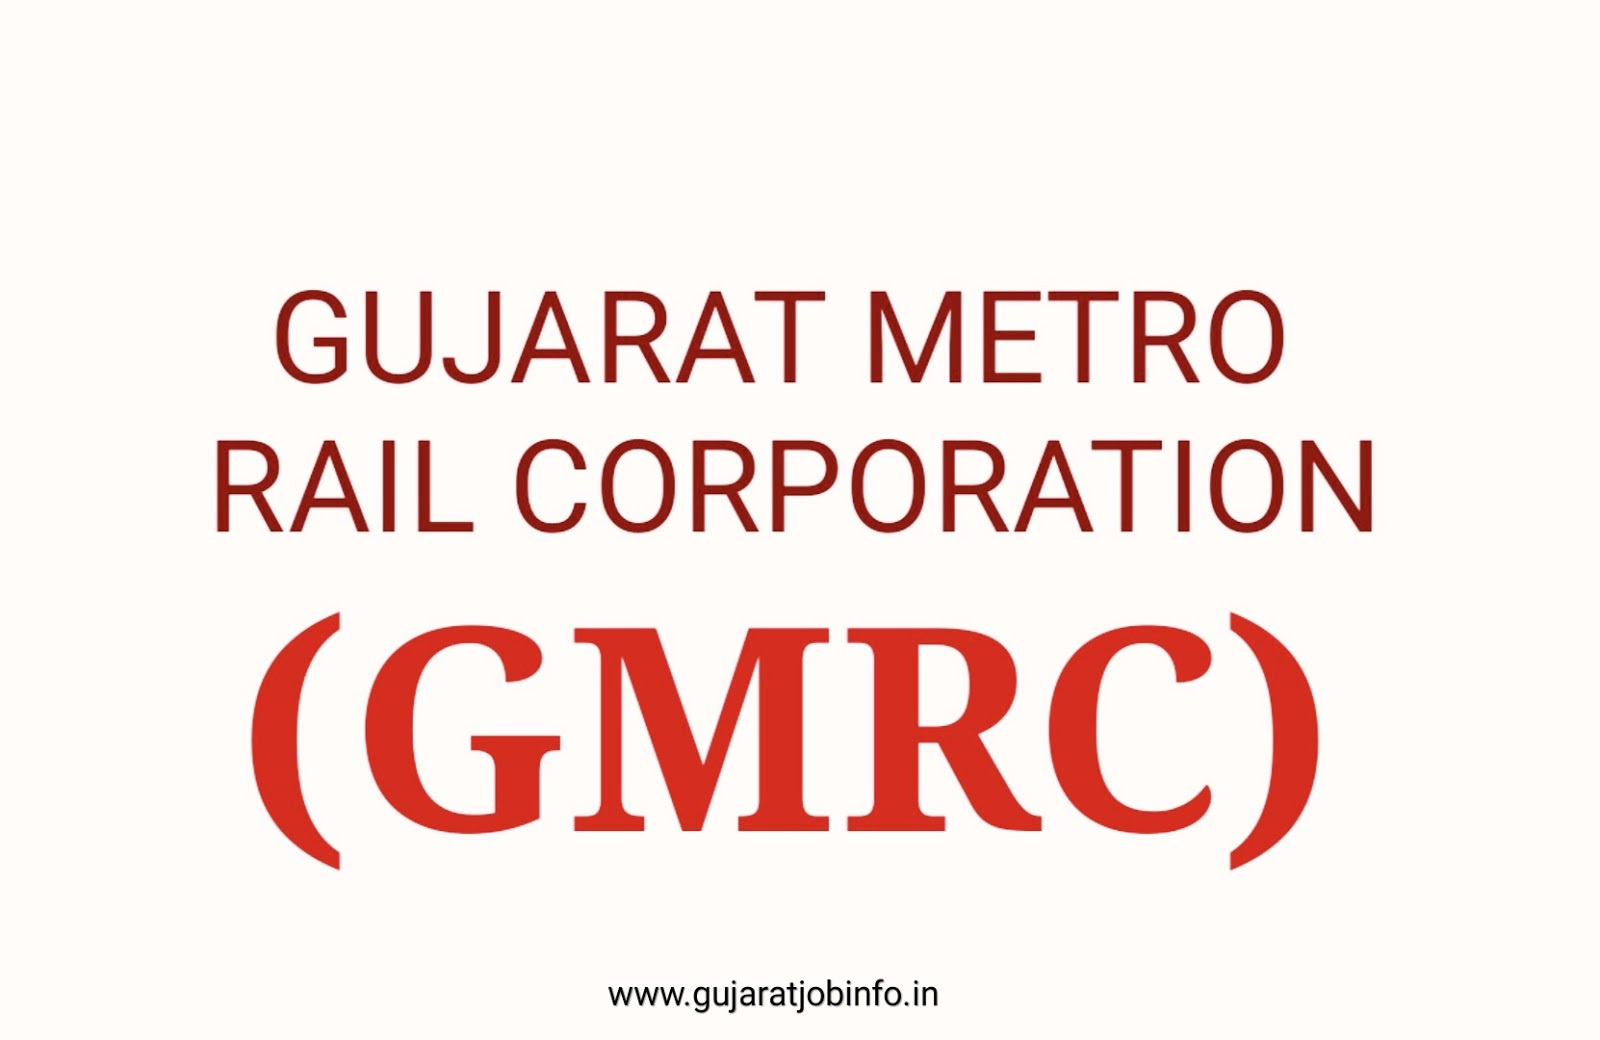 Gujarat Metro Rai Corporation (GMRC) Recruitment for GeneralManager, AssistantManager, and legal Assistant 2019